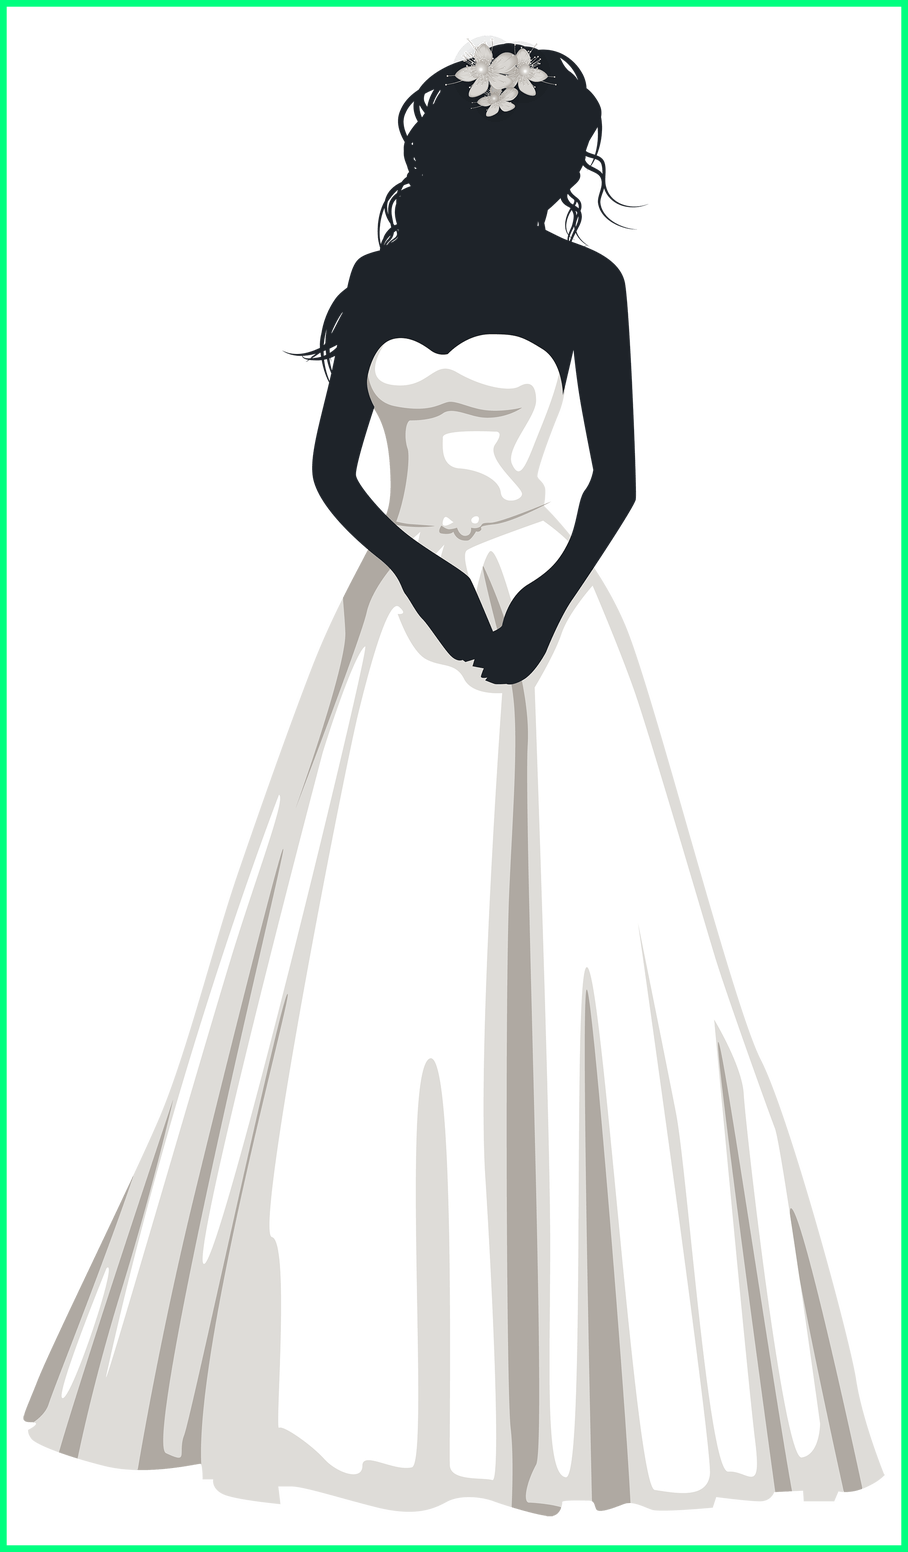 Clothing clipart silhouette. Fascinating bride png clip